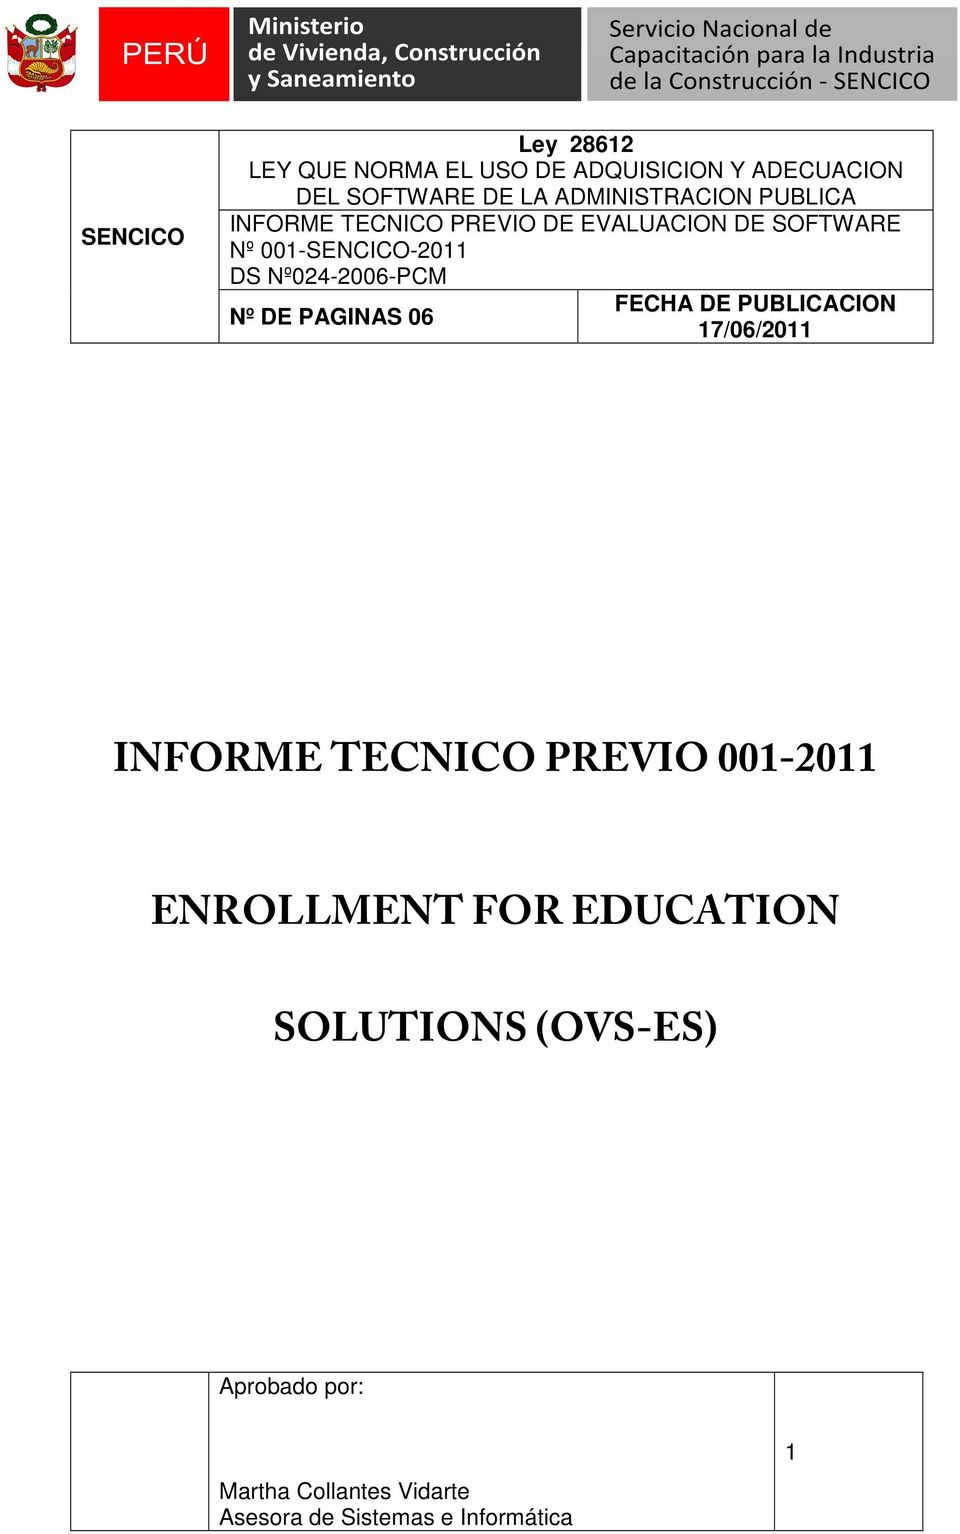 ENROLLMENT FOR